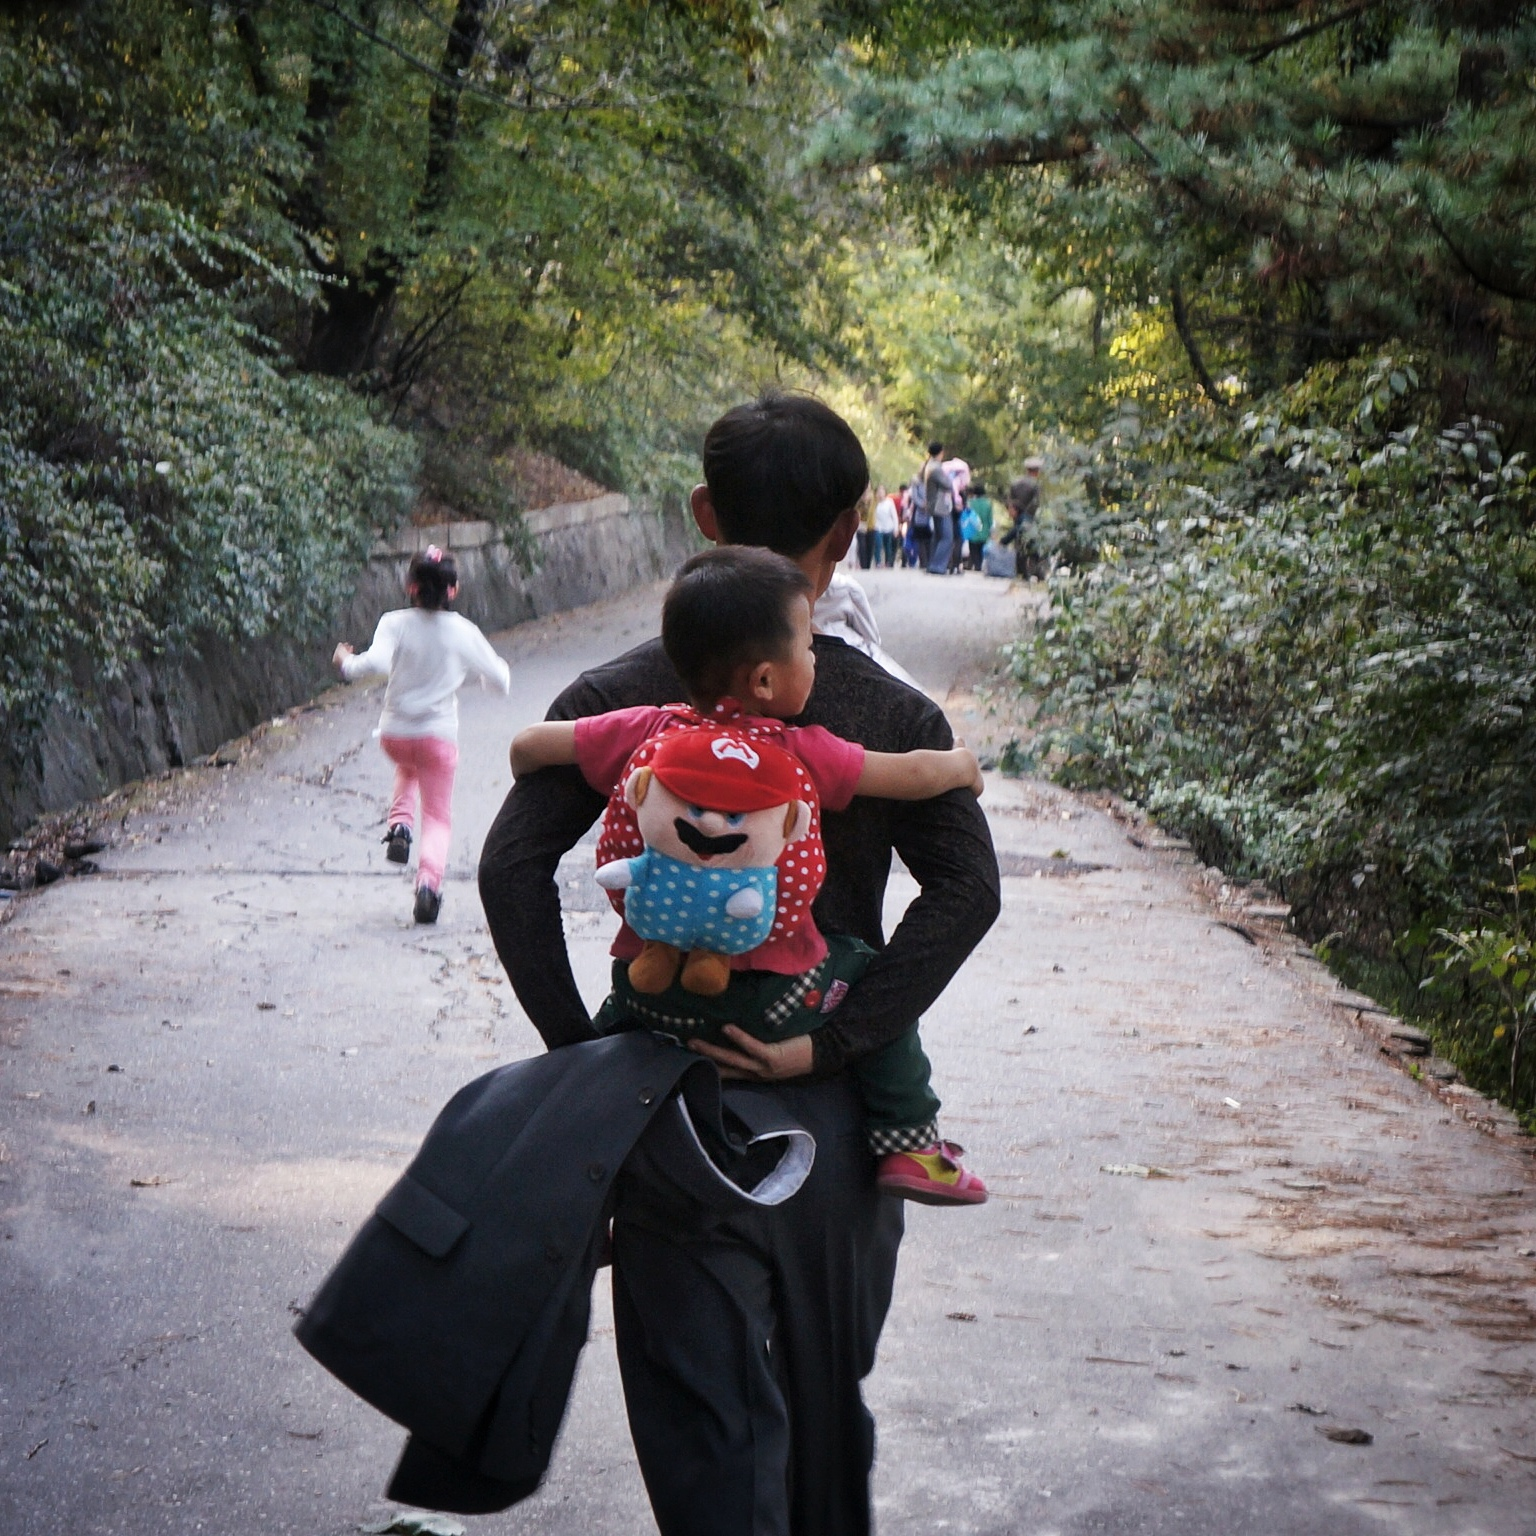 A man carries his son wearing a Mario Bros backpack in Pyongyang, North Korea.